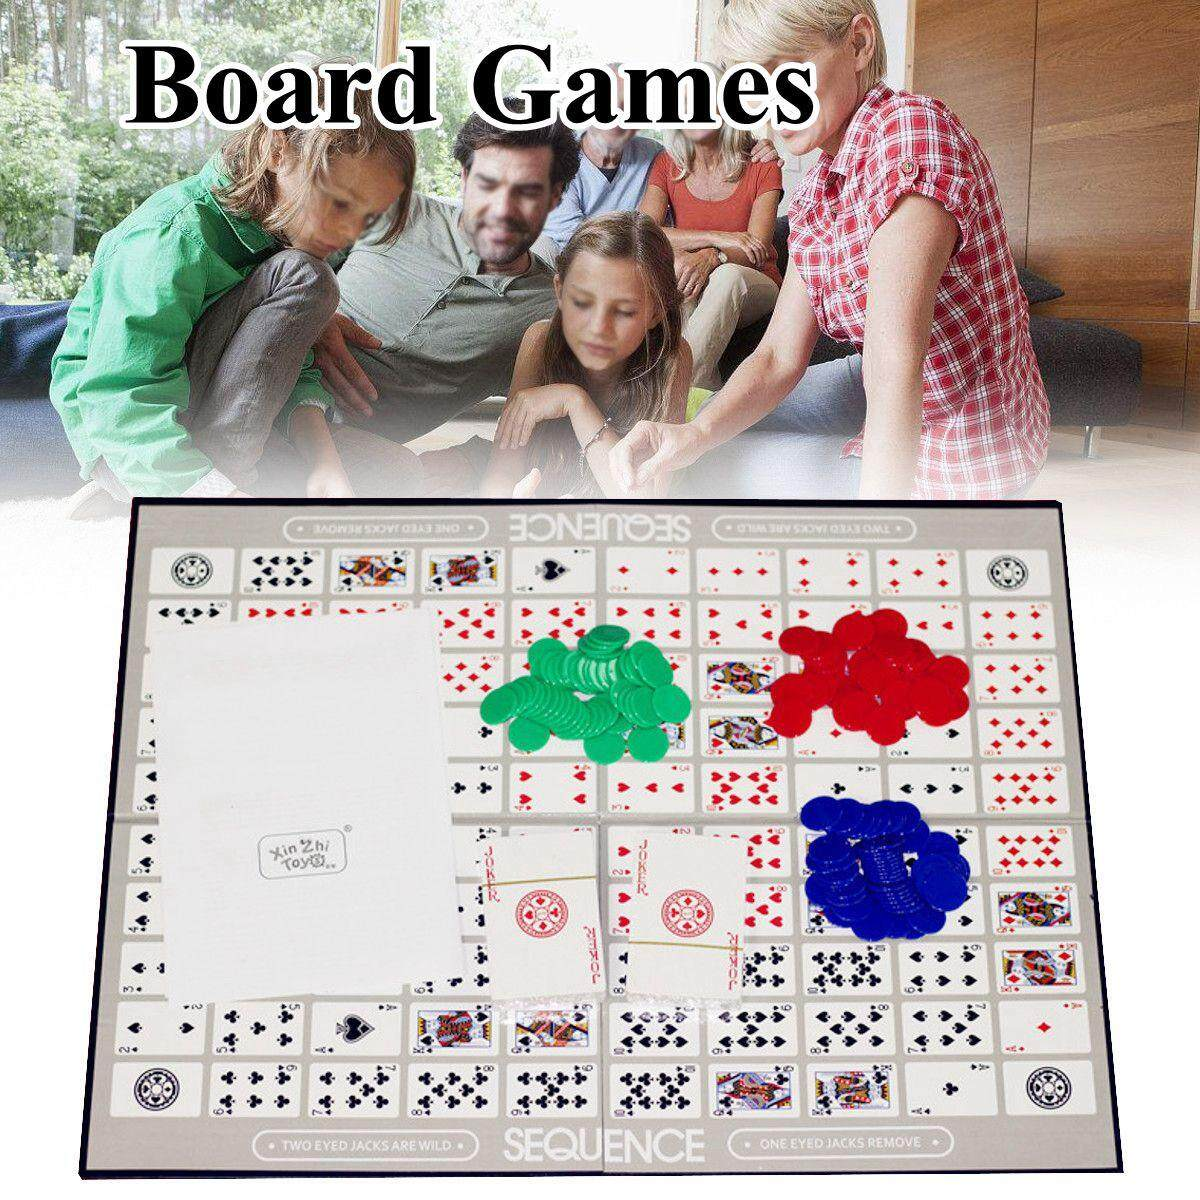 Compare Board Games Challenge Sequence Strategy Card For 2 12 Players Family Fun Game Intl